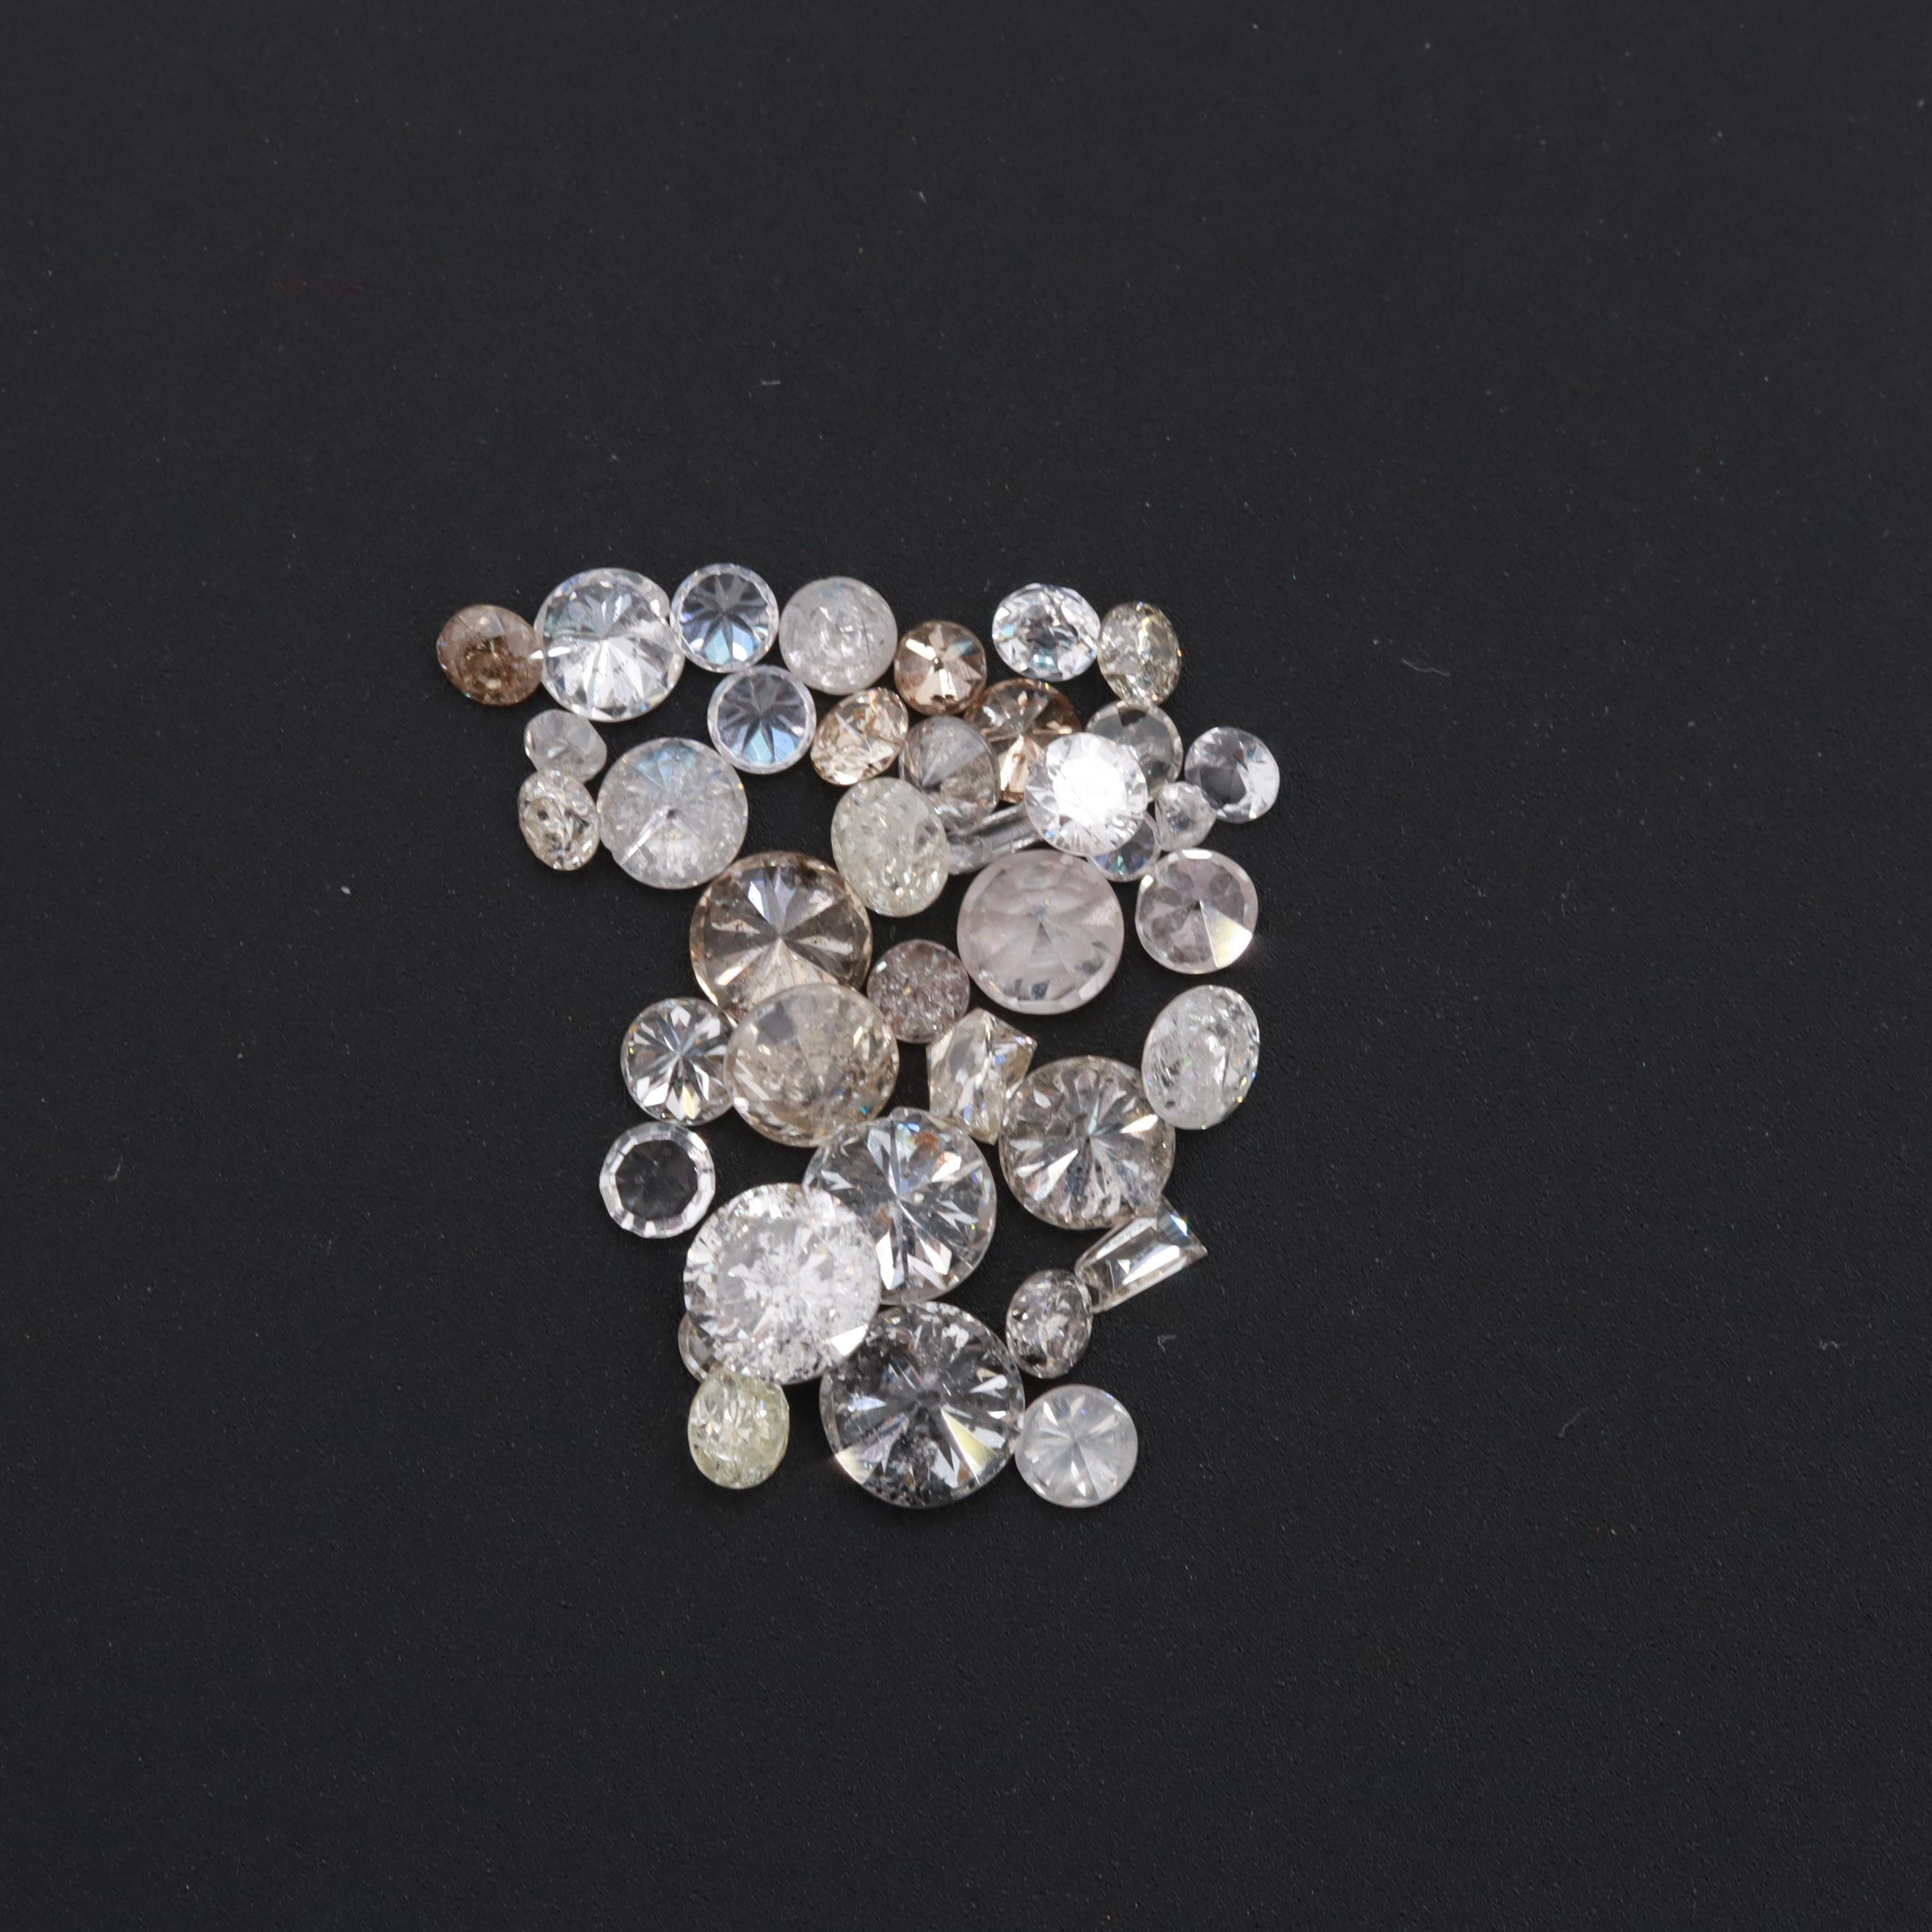 Loose 1.74 CTW Diamond Assortment